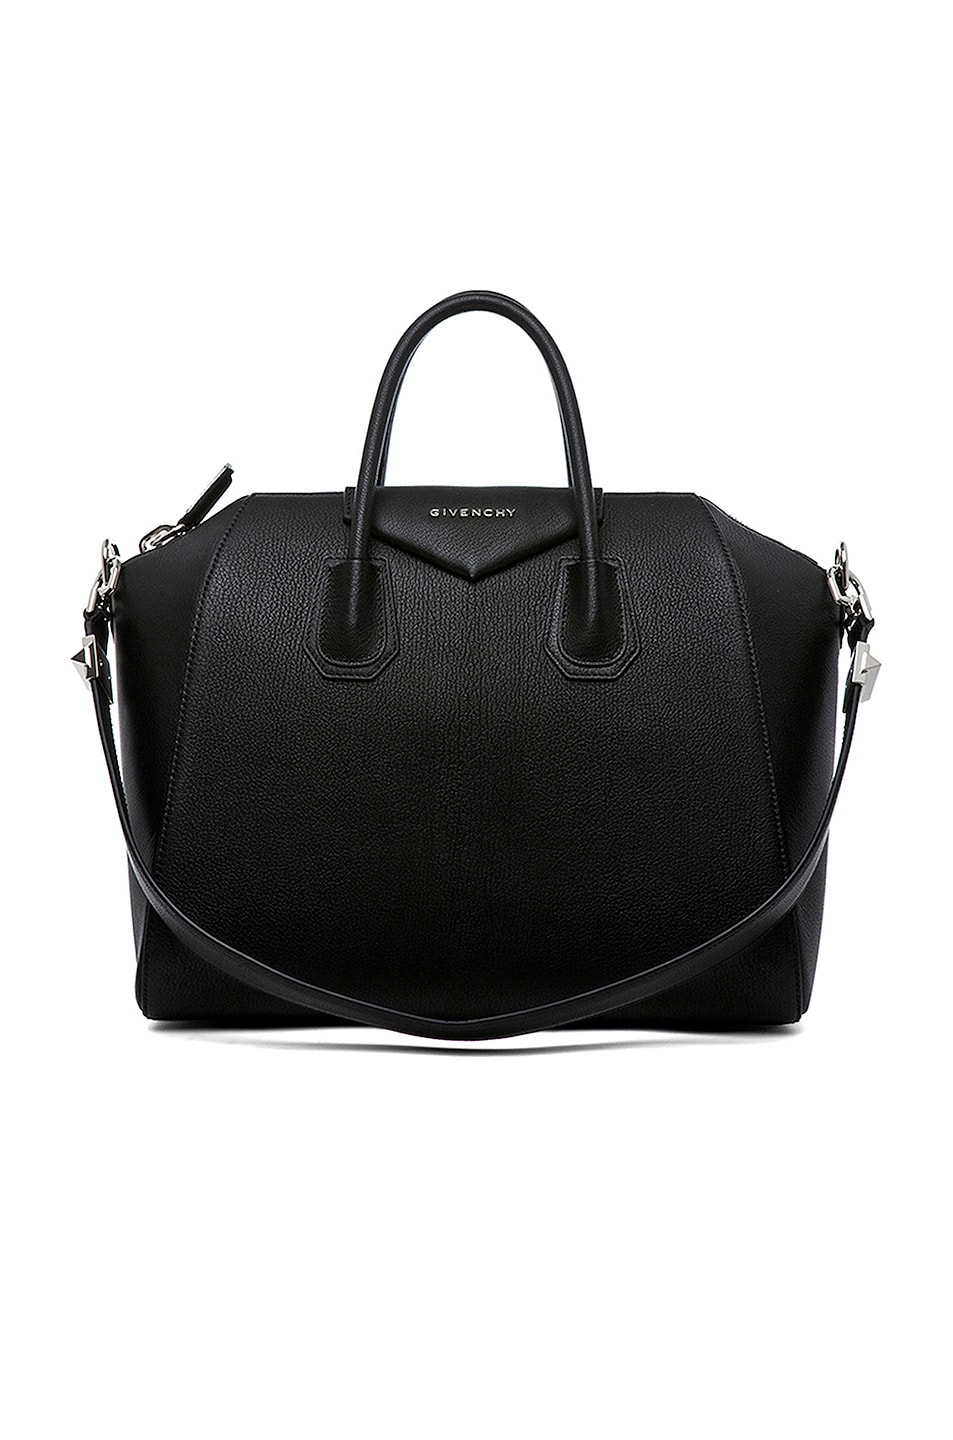 Image 1 of Givenchy Medium Sugar Antigona in Black